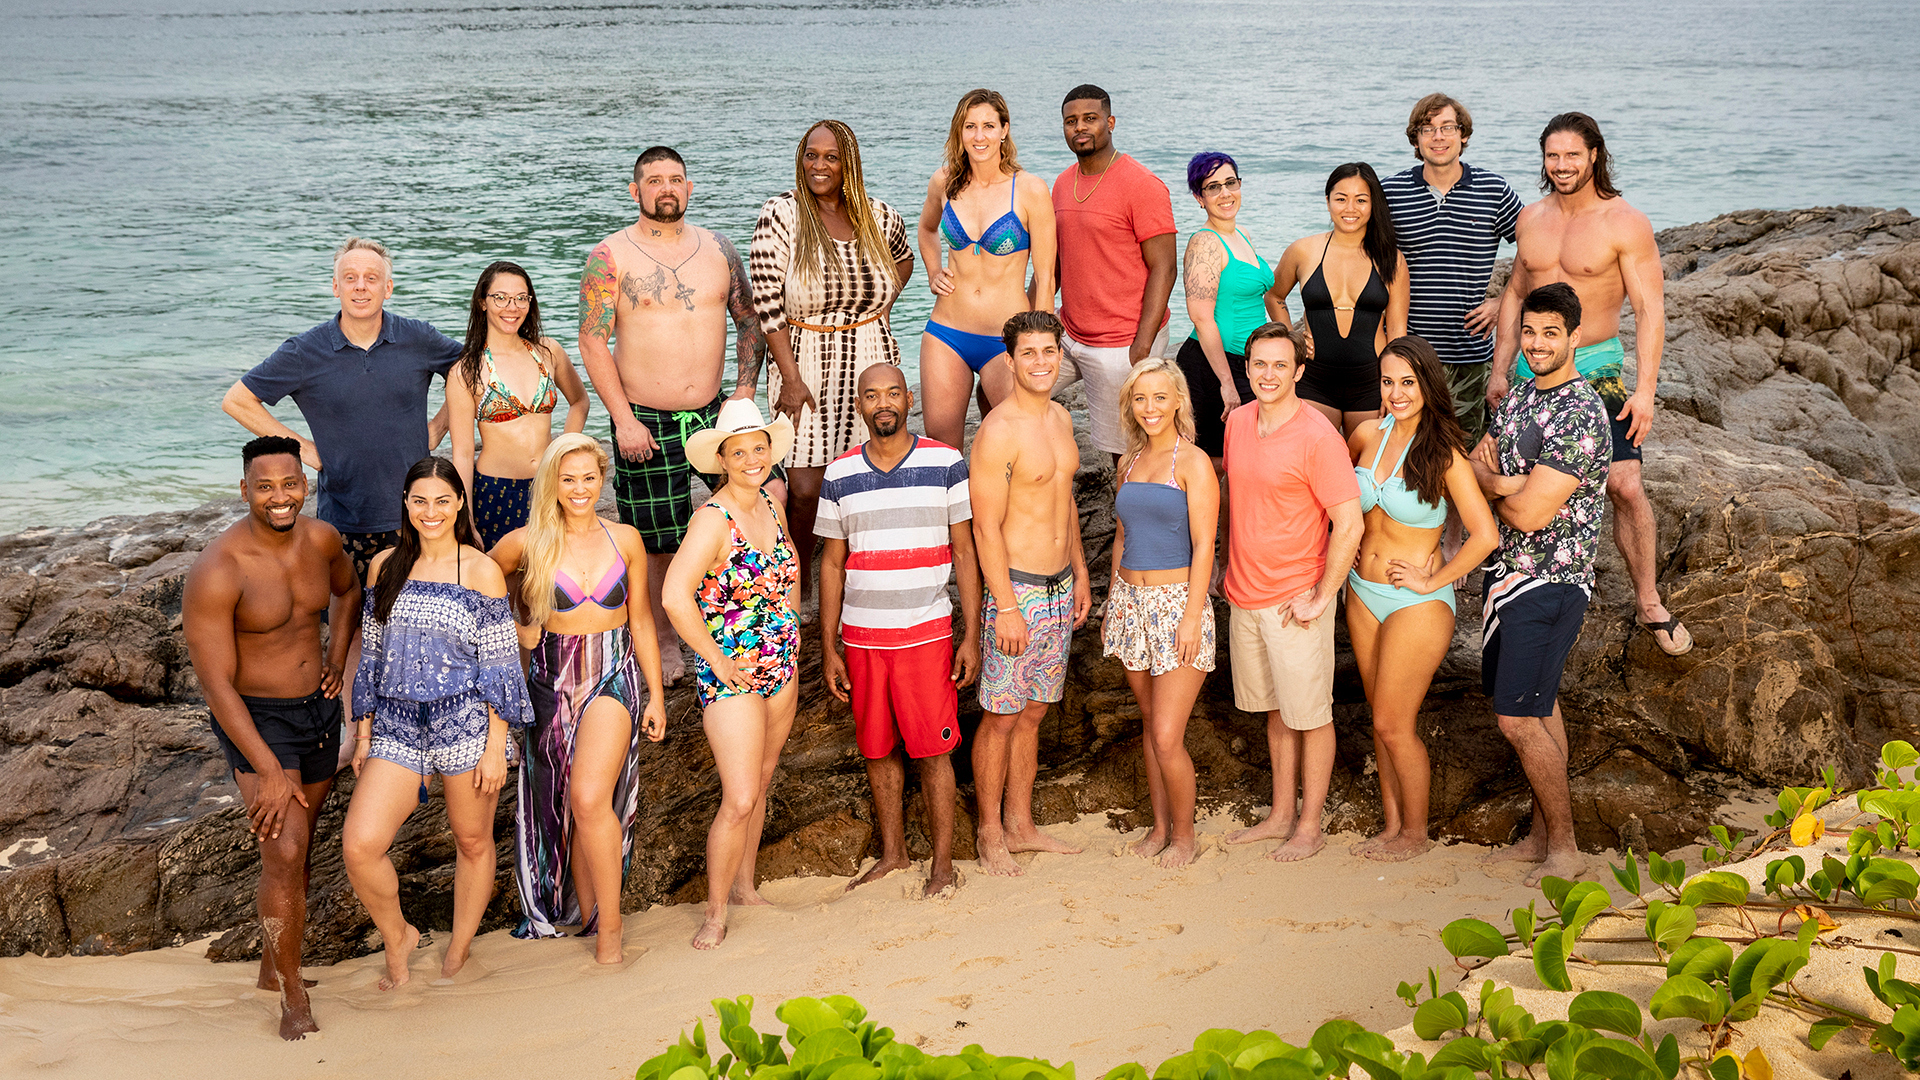 survivor season 37: meet the cast of david vs. goliath - survivor